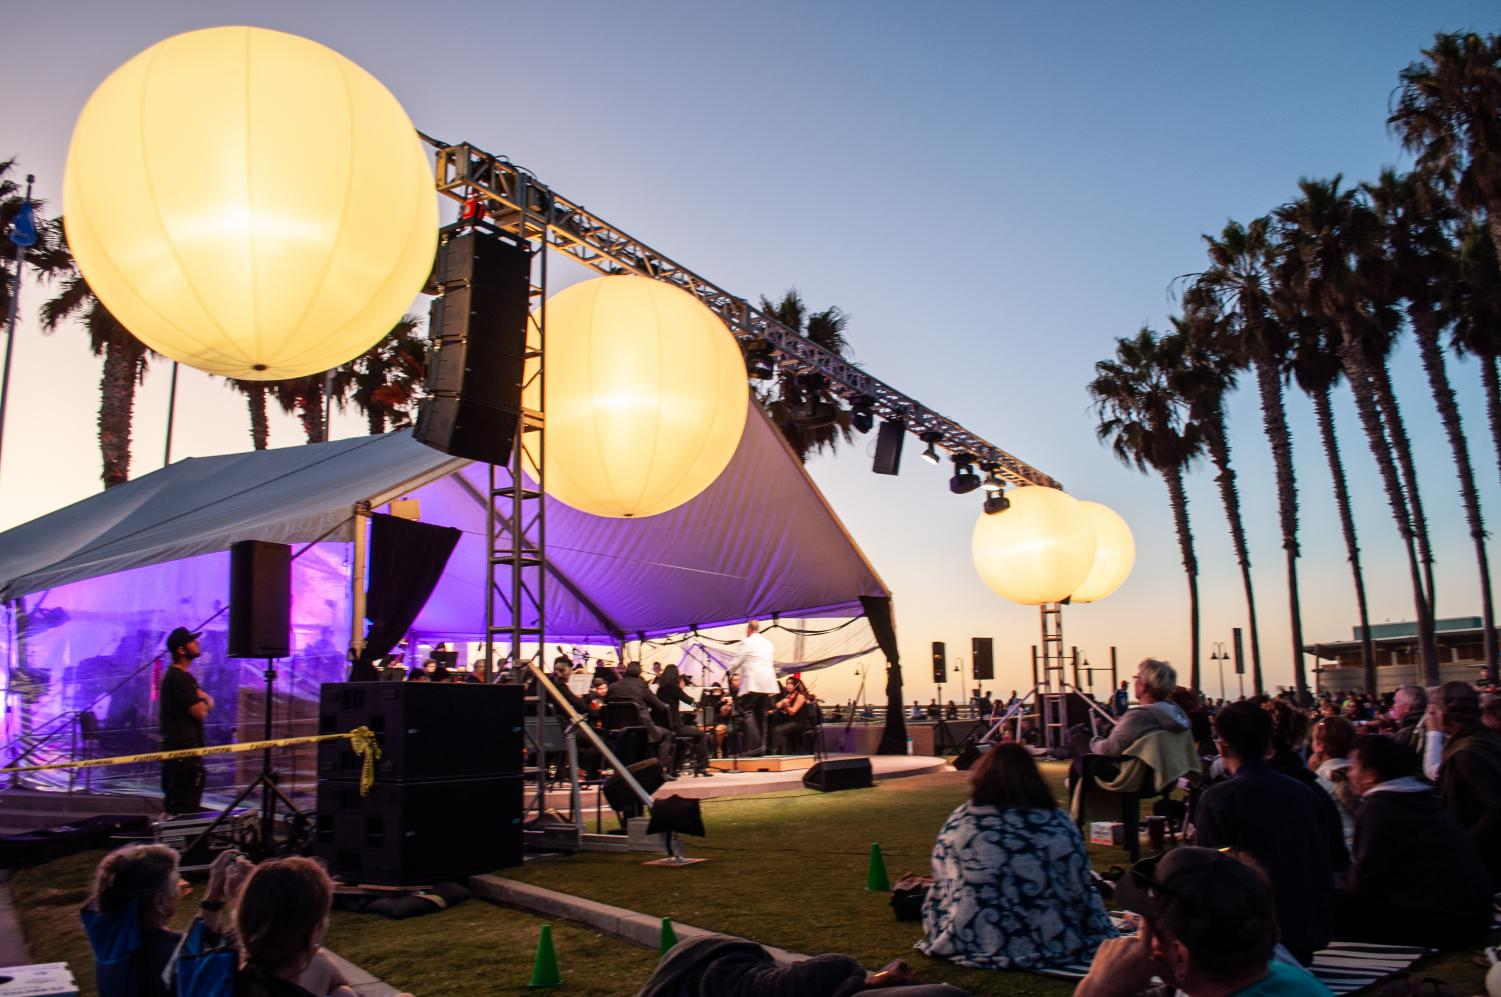 SDSU symphonies perform during sunset at Imperial Beach.